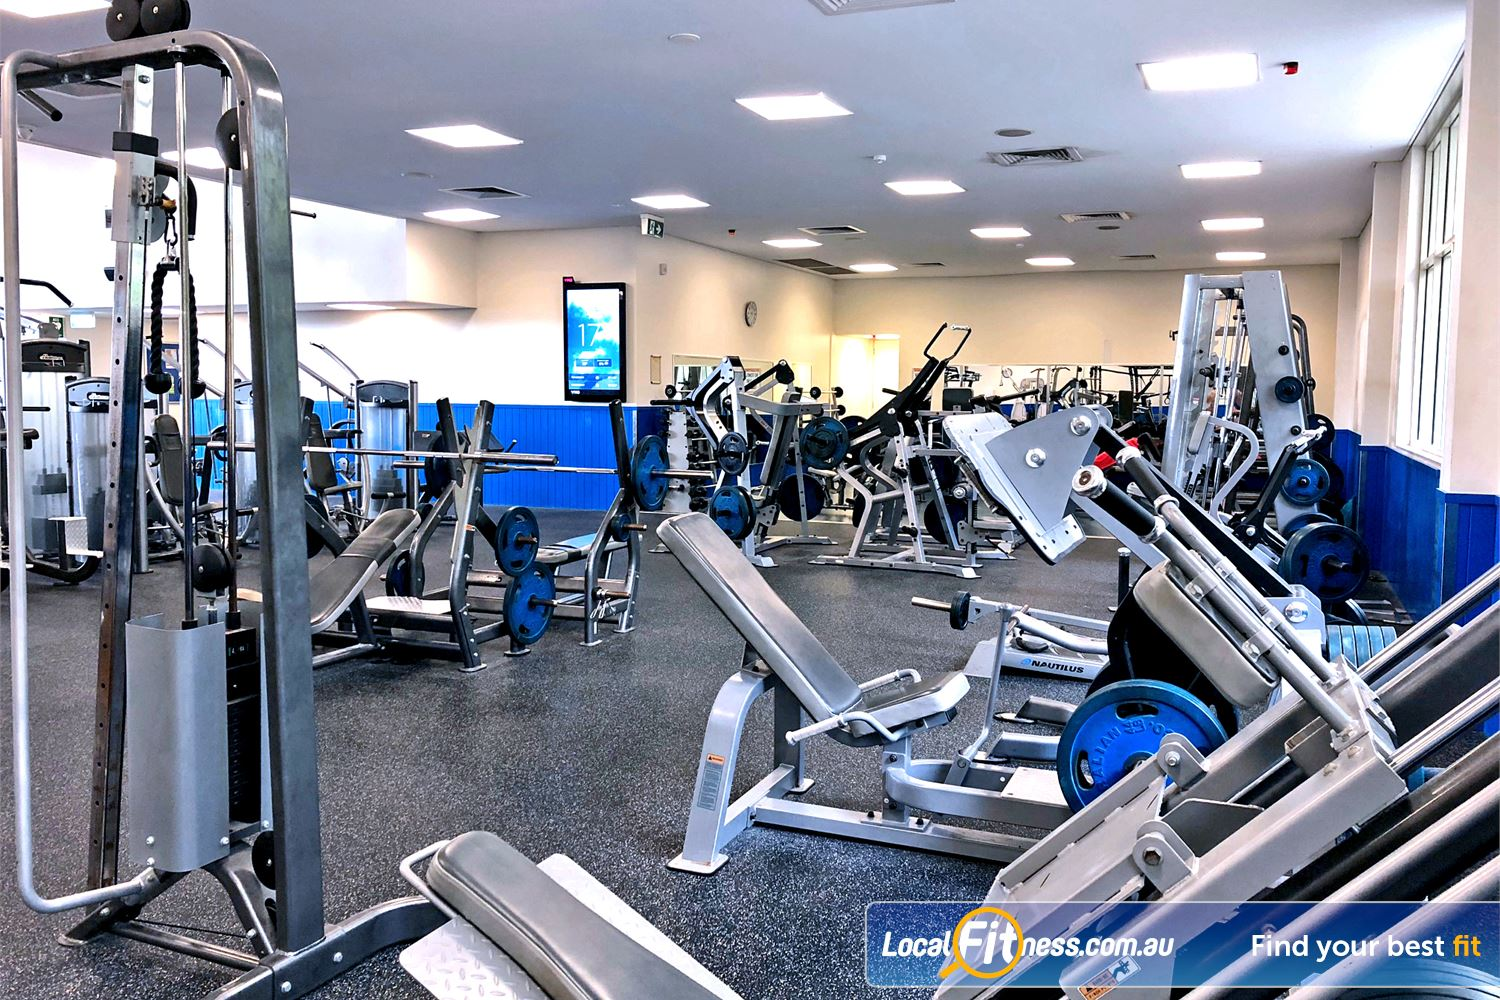 Albany Creek Leisure Centre Albany Creek Dumbbells, barbells, plate-loading machines and more.